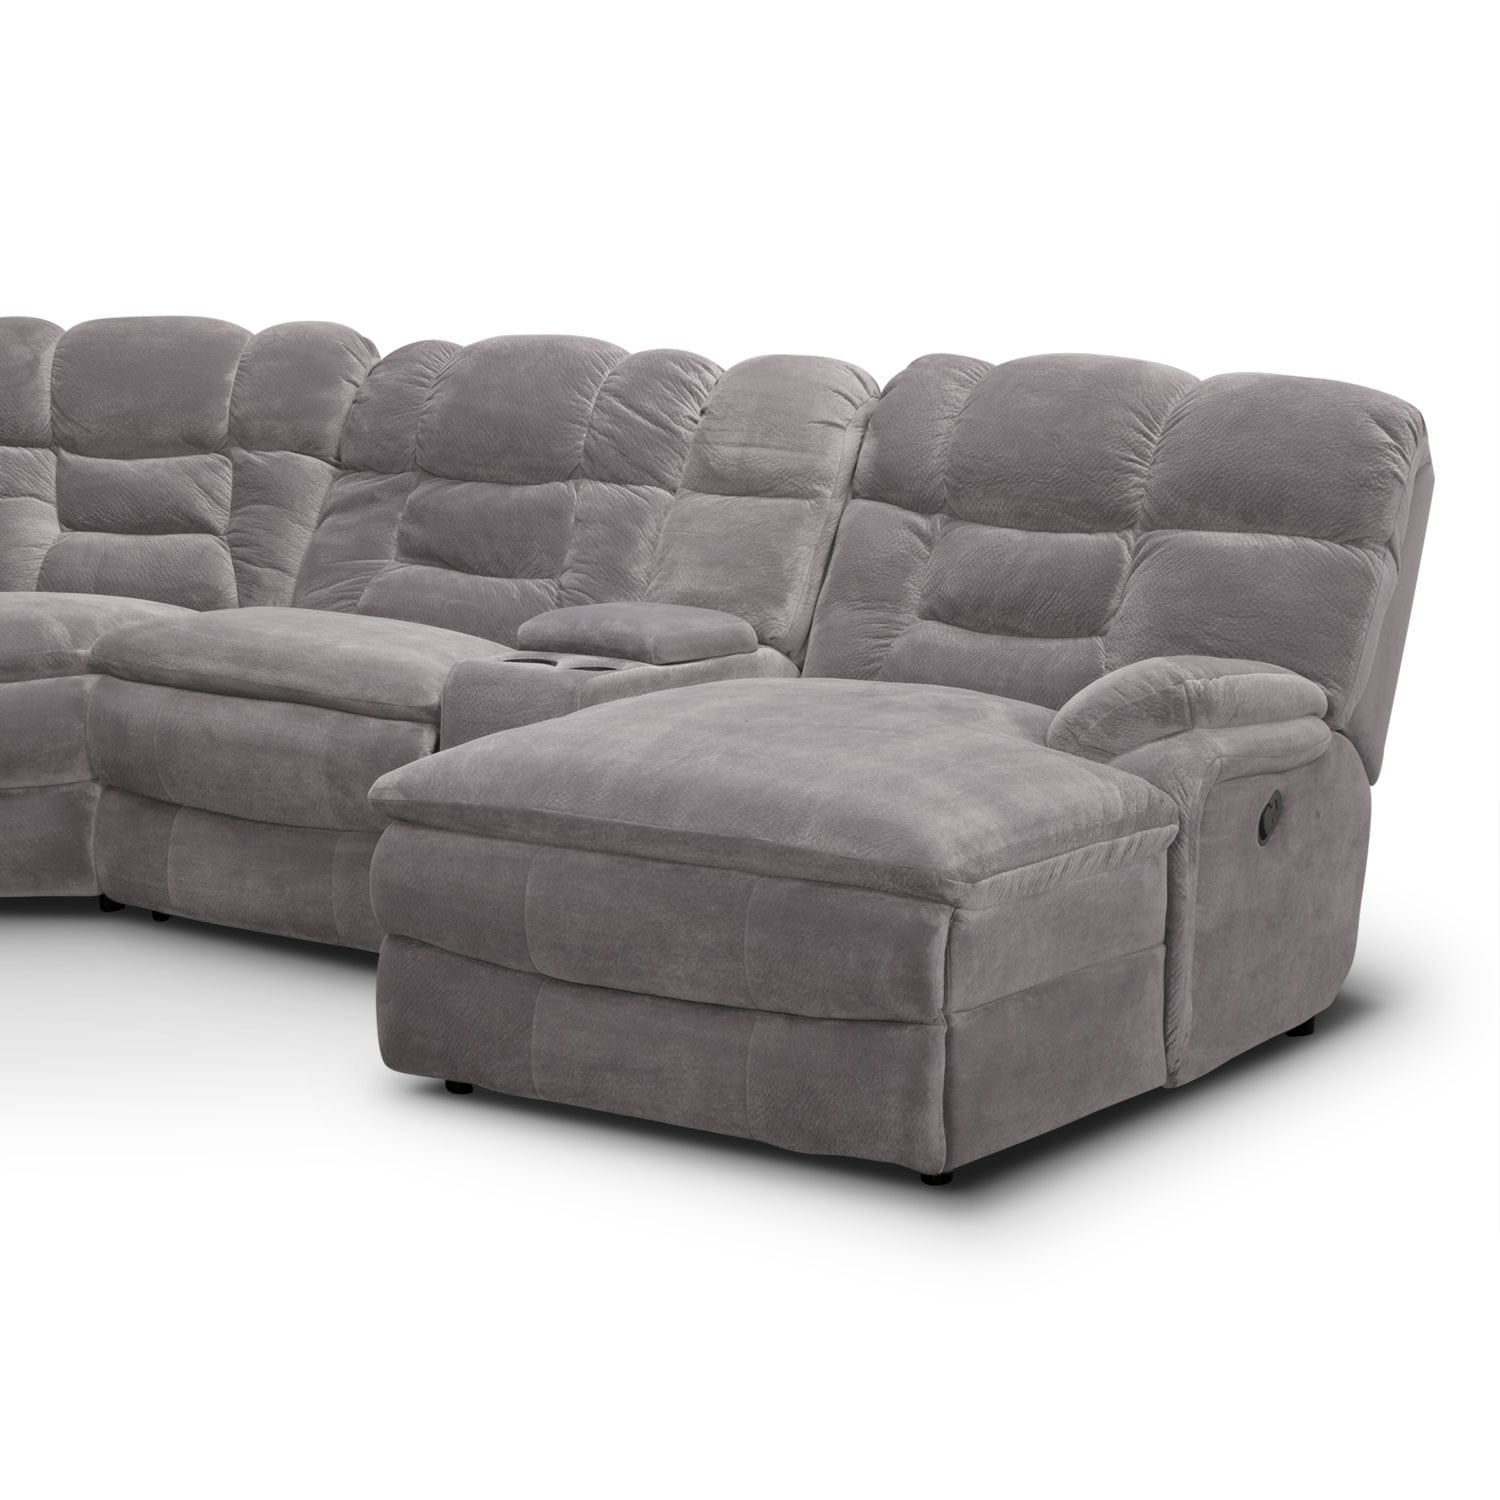 Power Reclining Sectional With Right Press Back Chaise By: Big Softie 6-Piece Power Reclining Sectional With Chaise